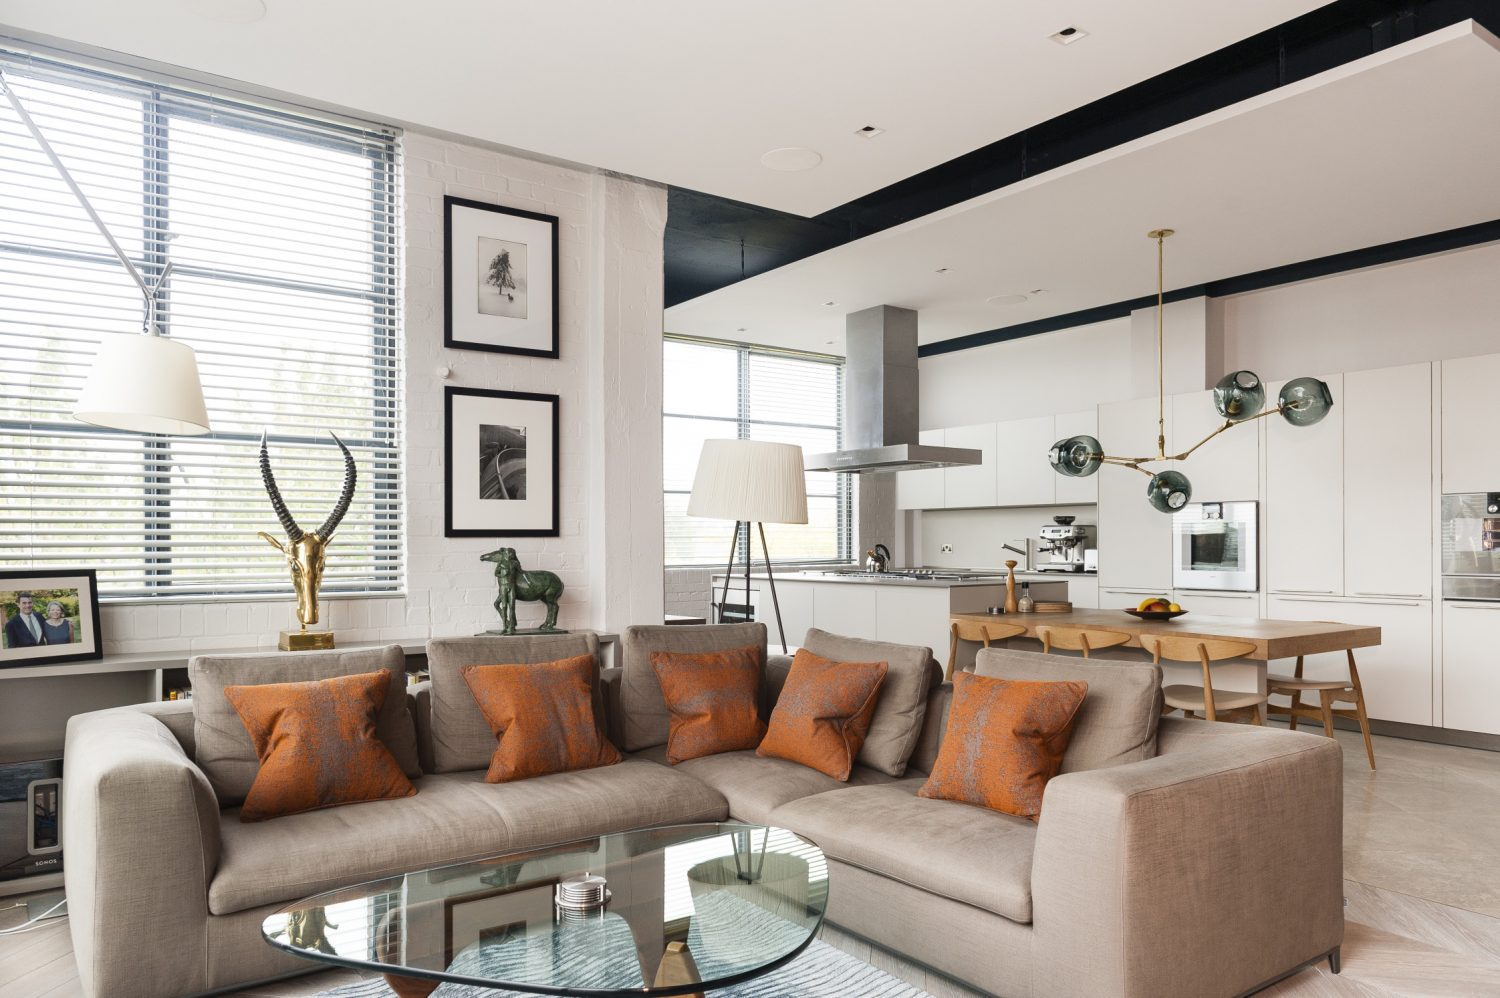 It is clear that art is important to Mike and Caroline, and their numerous pieces are shown off to good effect by the muted colour scheme in the open plan area of the apartment